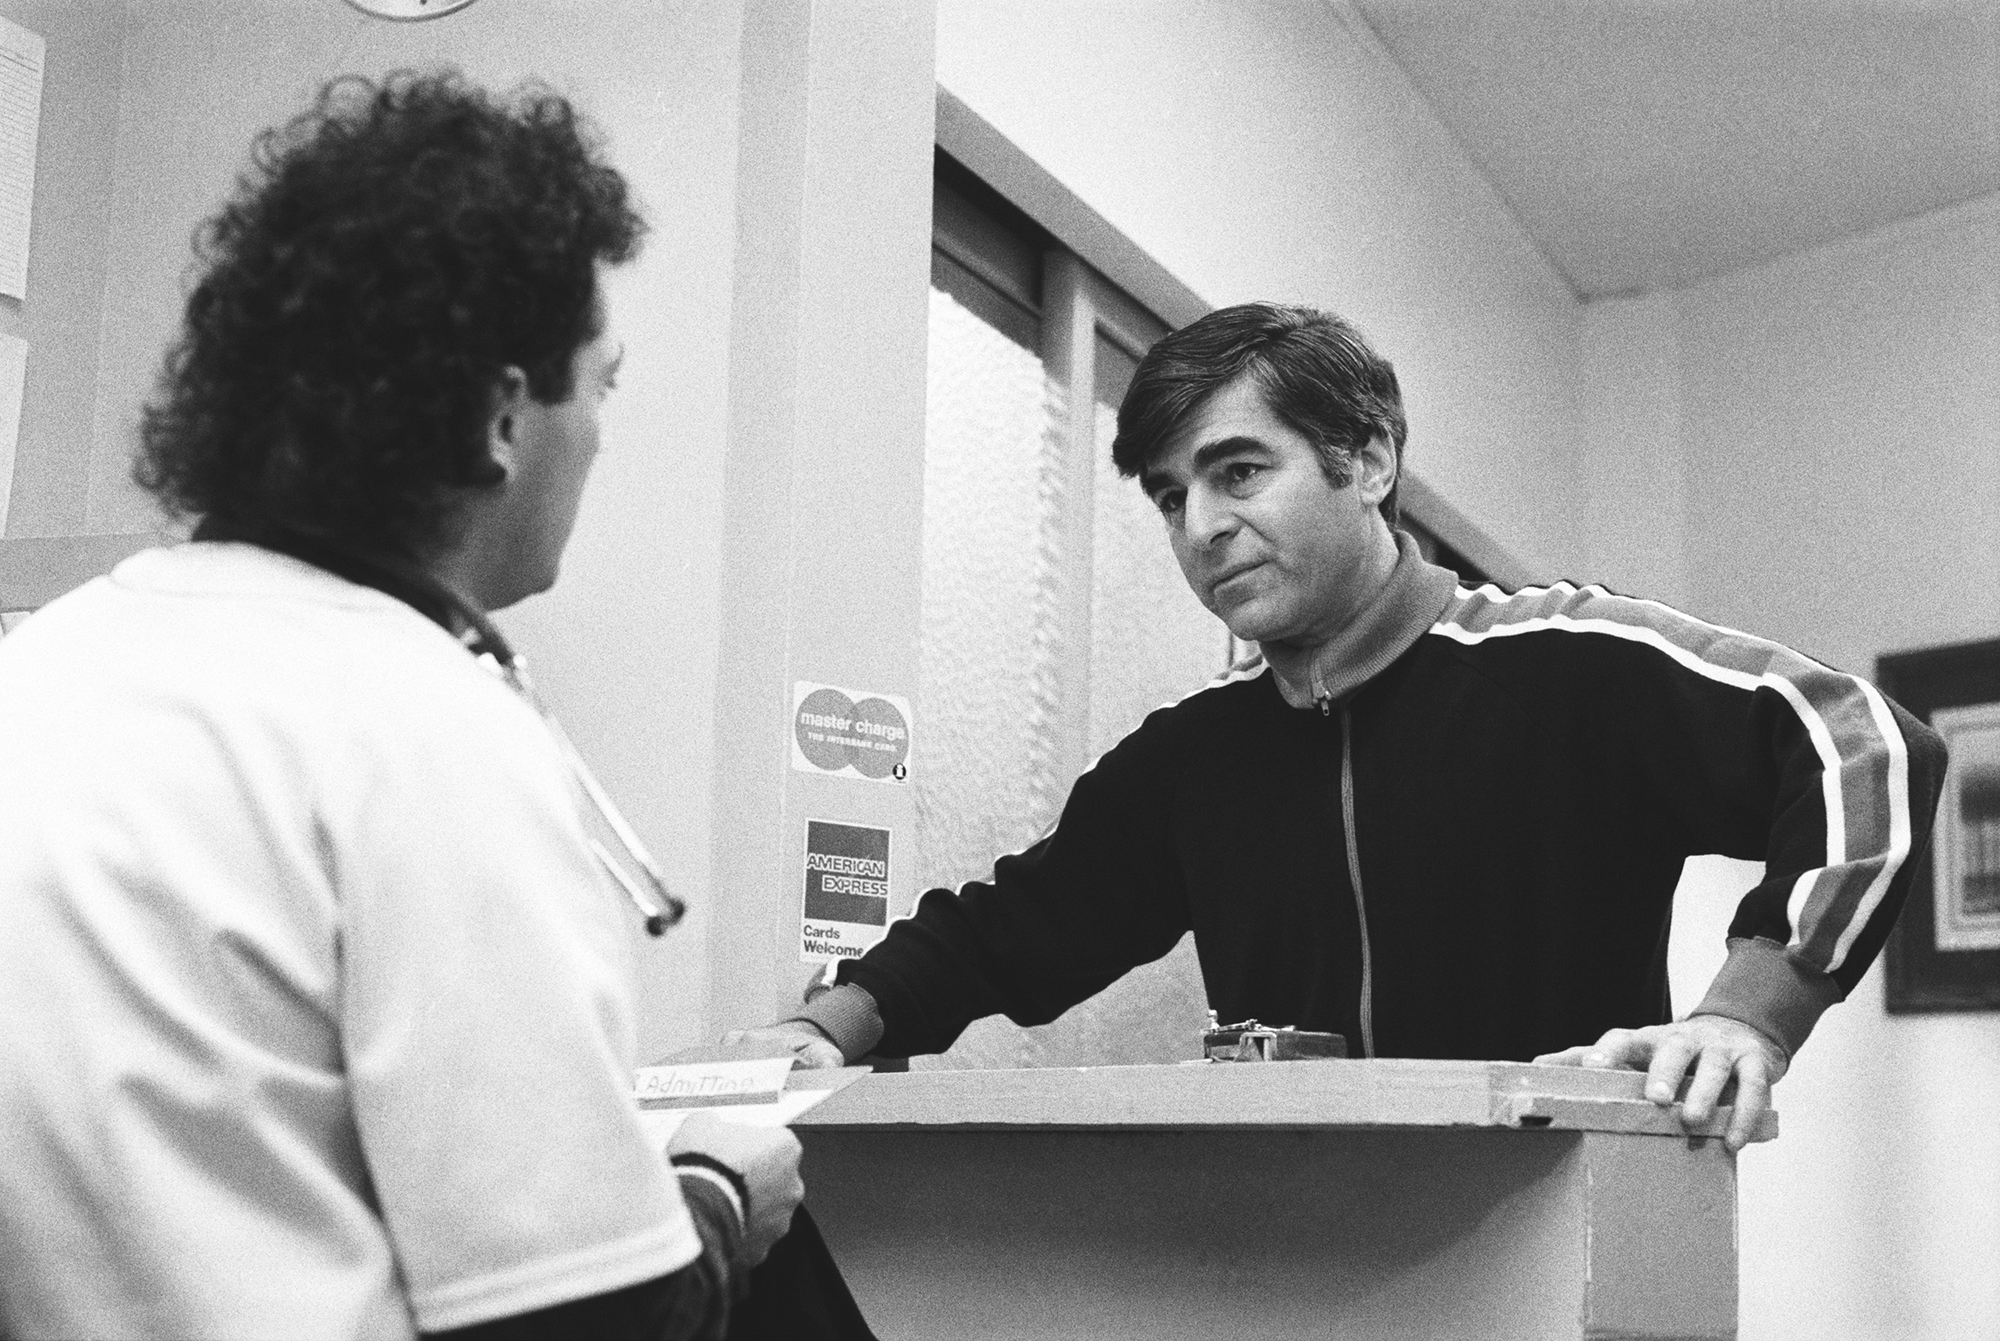 Howie Mandel and former presidential candidate Michael Dukakis on St. Elsewhere, 1985.